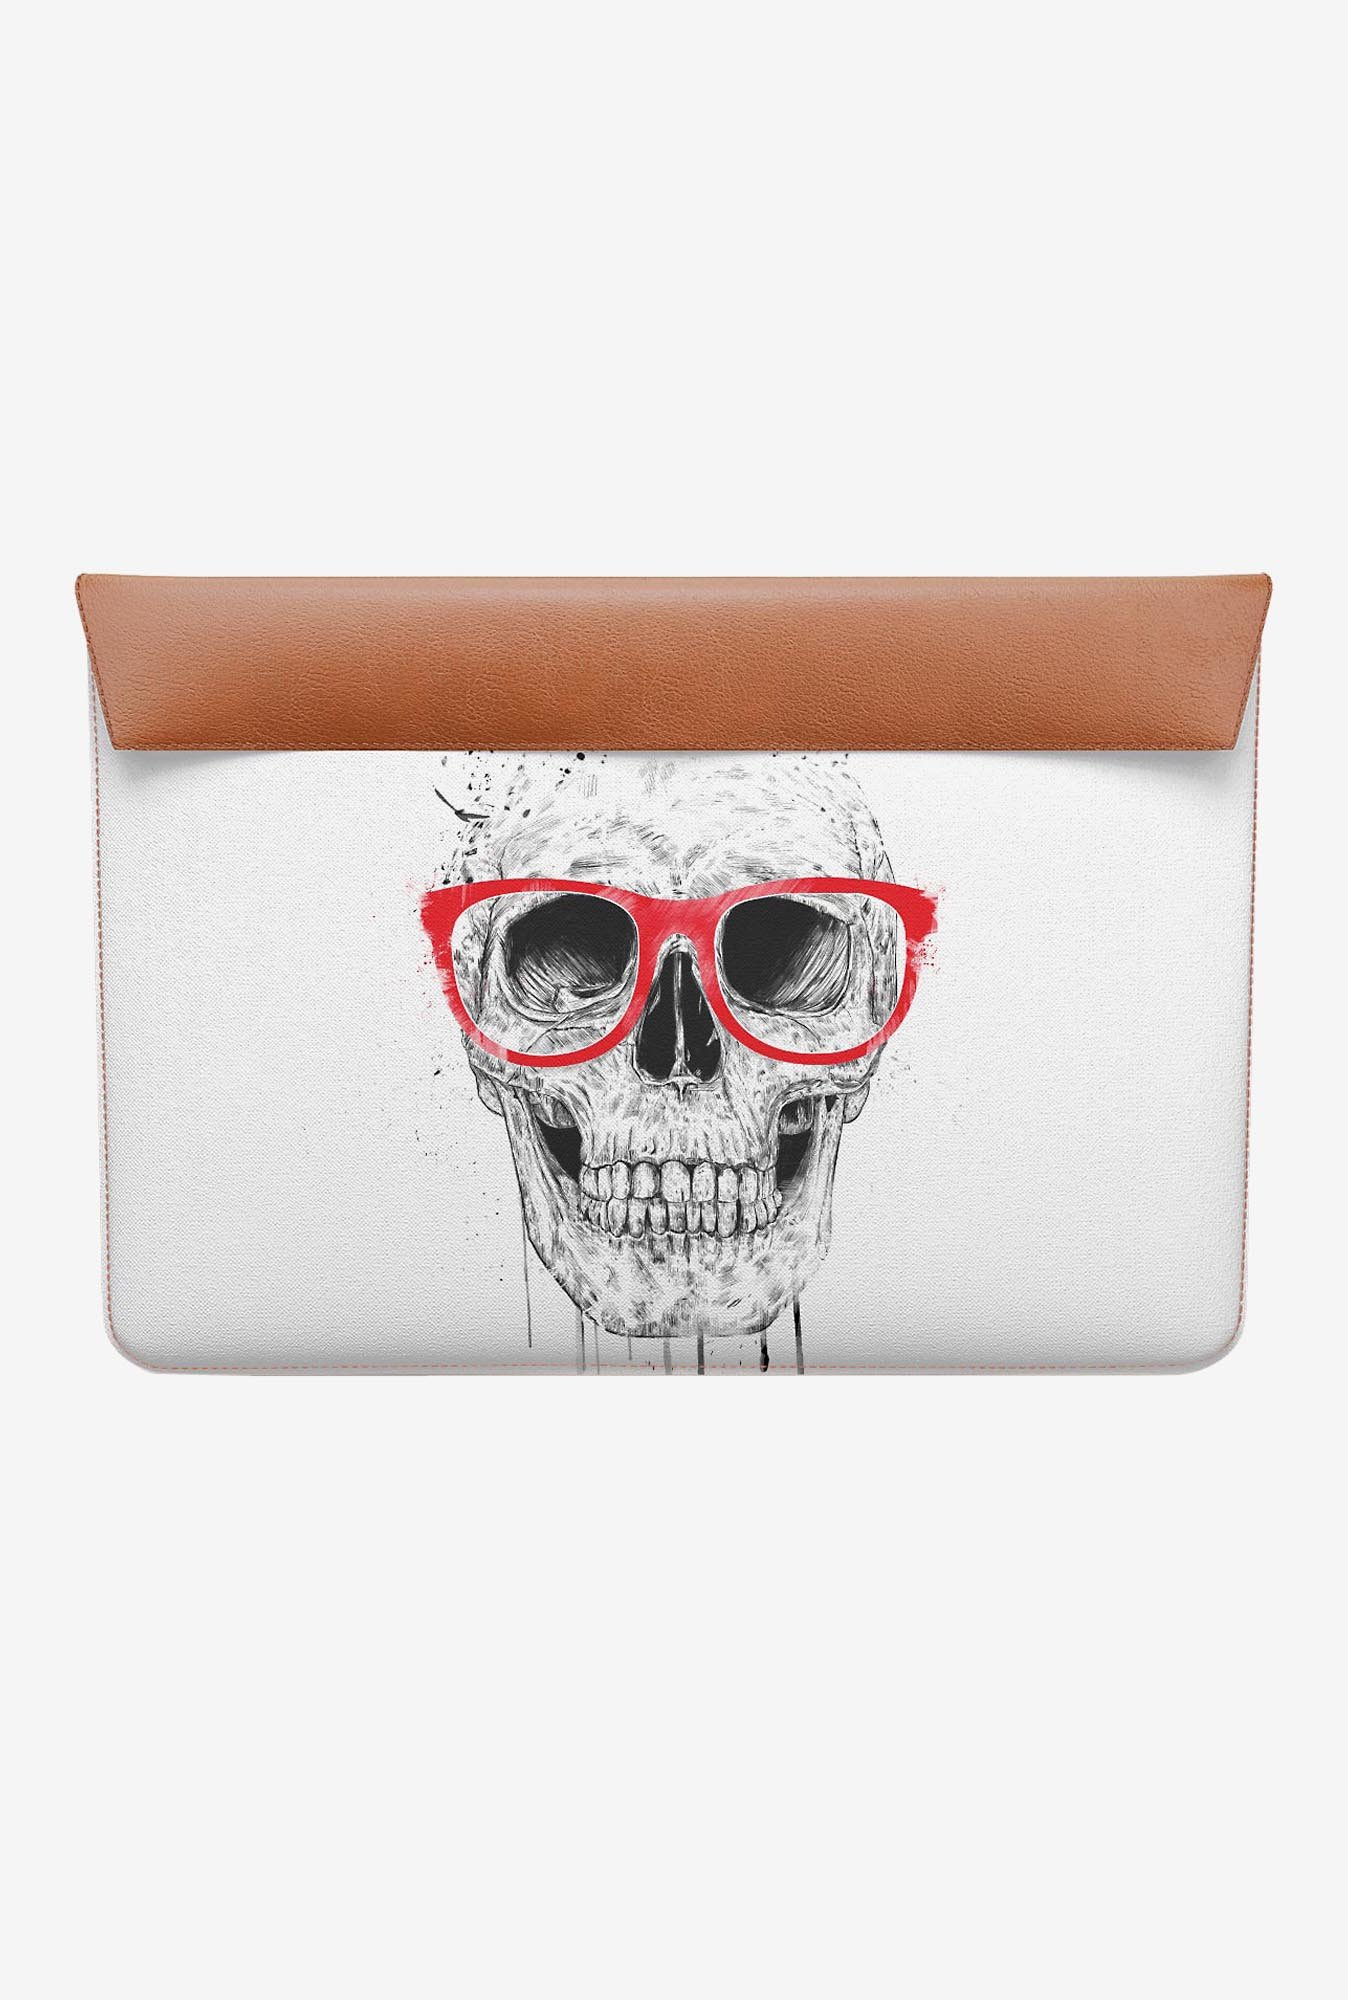 DailyObjects Skull Red Glass MacBook Pro 13 Envelope Sleeve